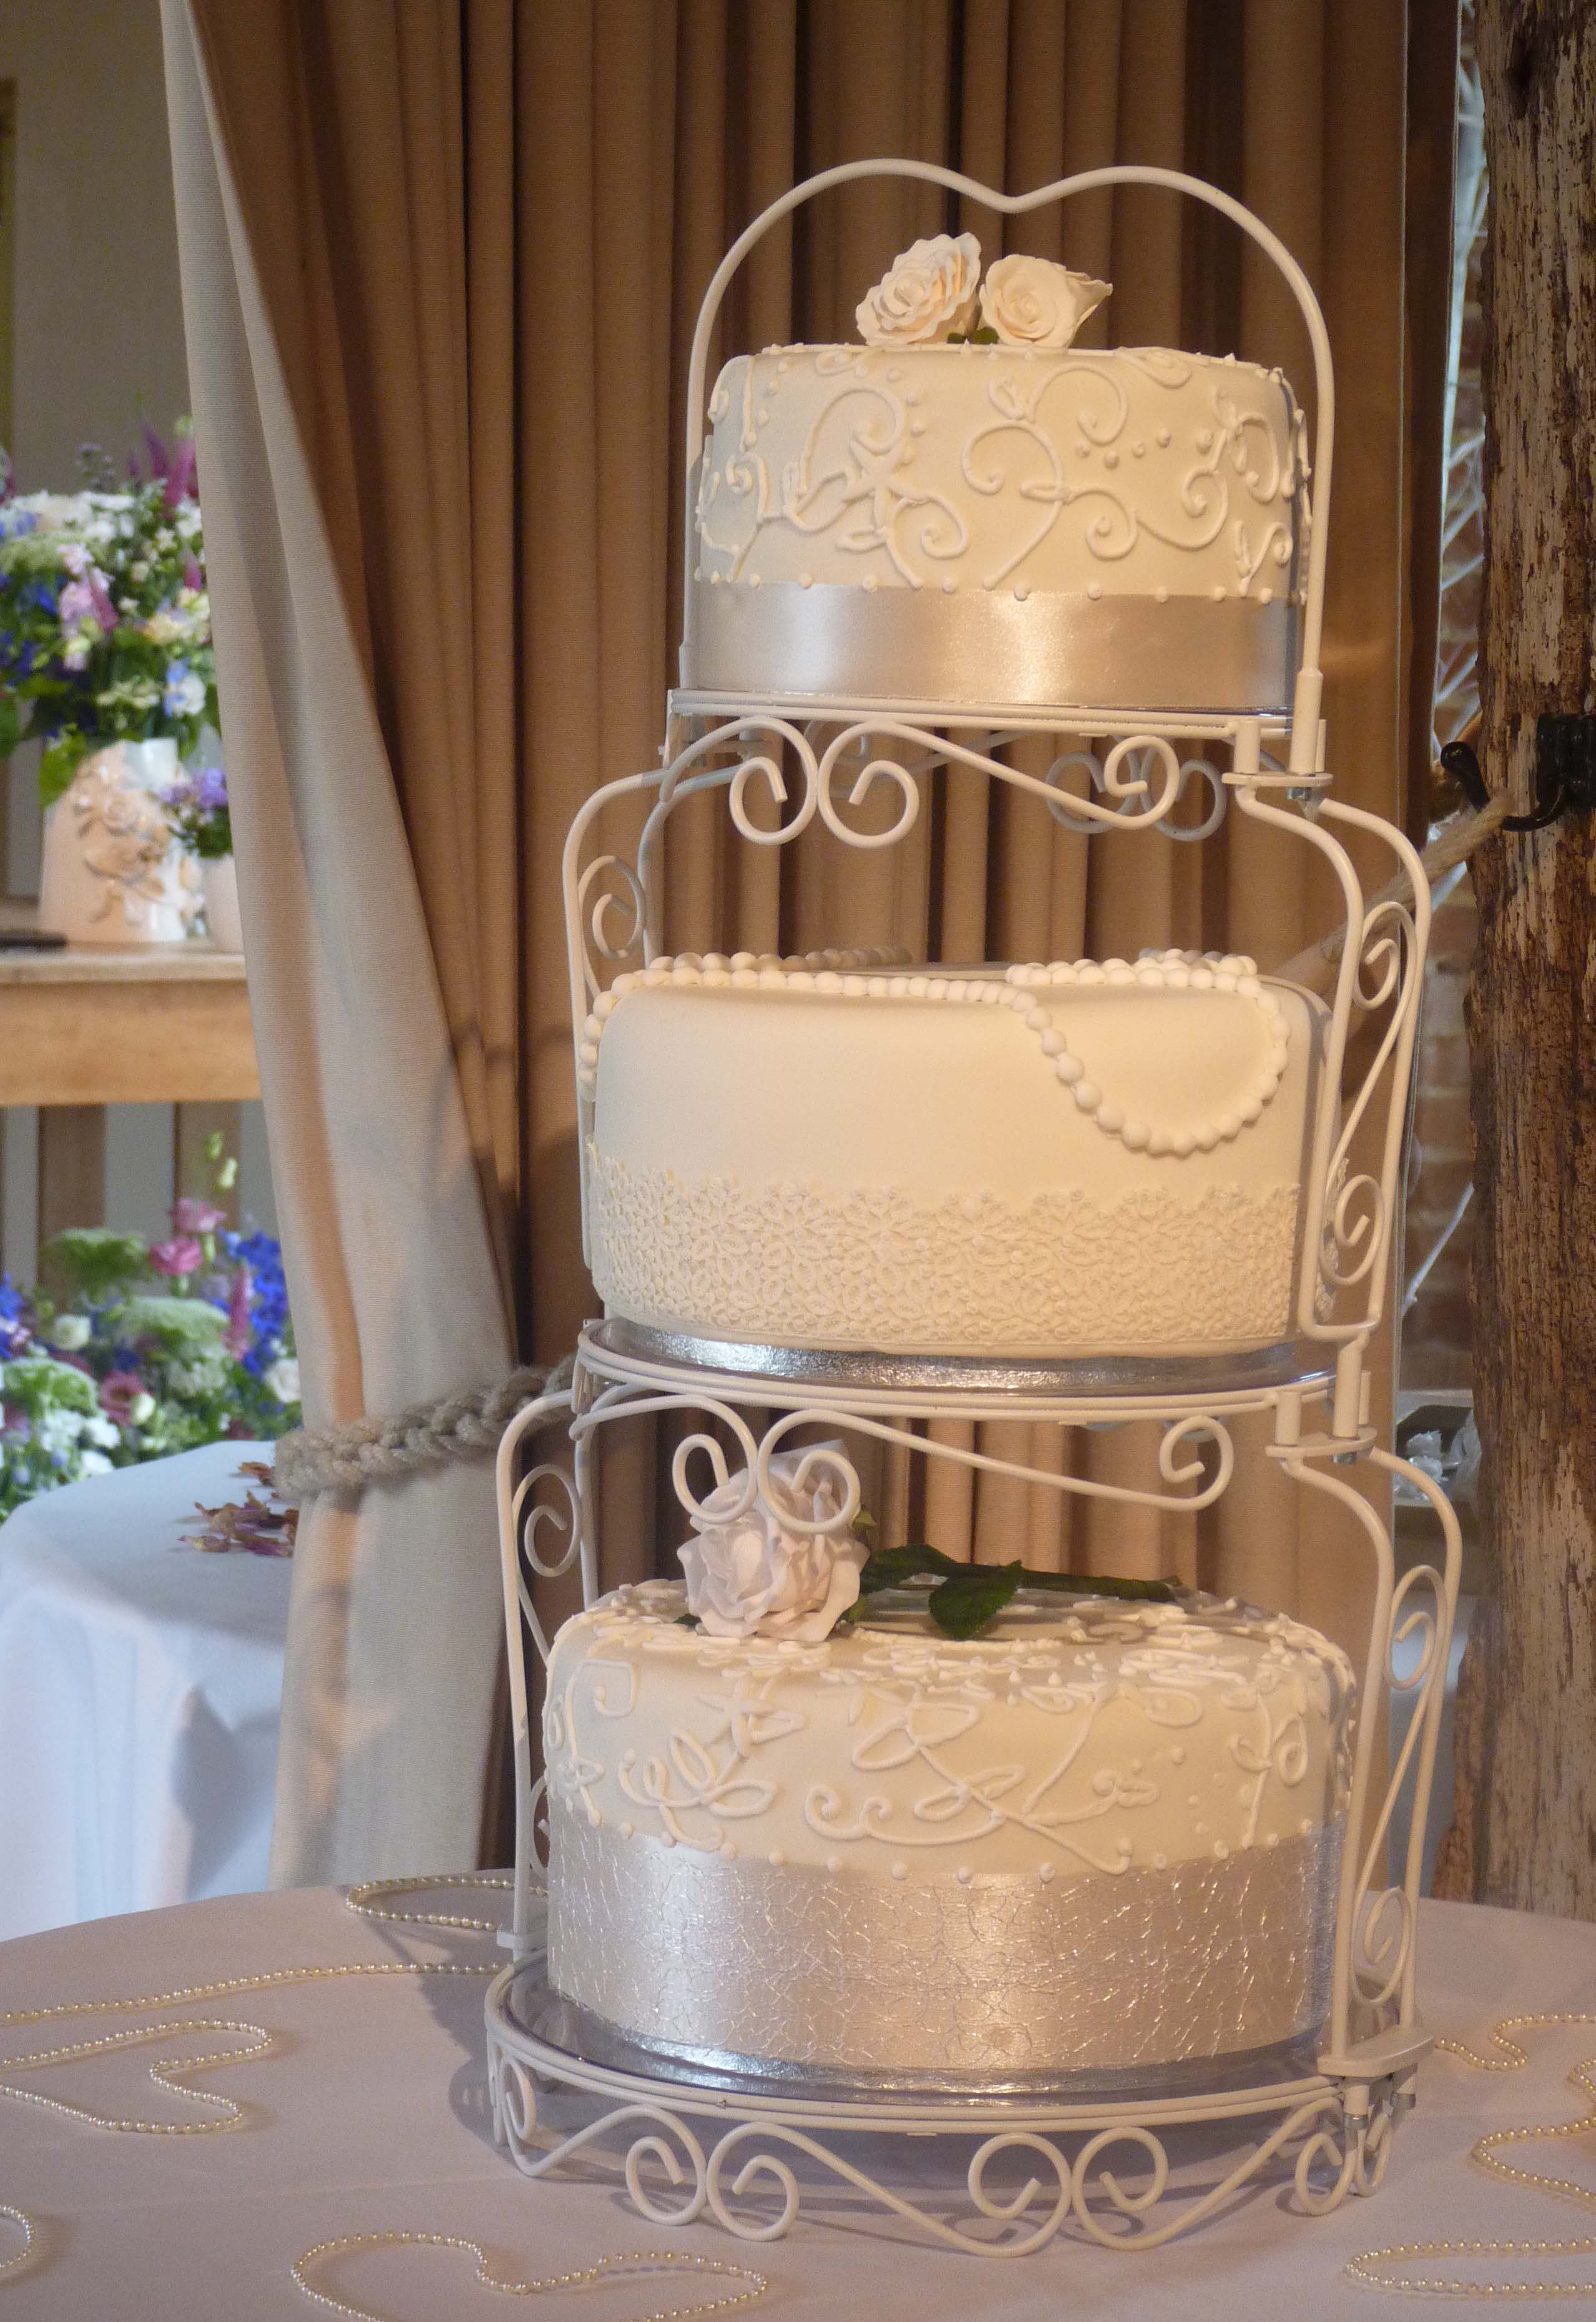 Vintage Style Lace And Pearls Wedding Cake In The Limelight At Bury Court